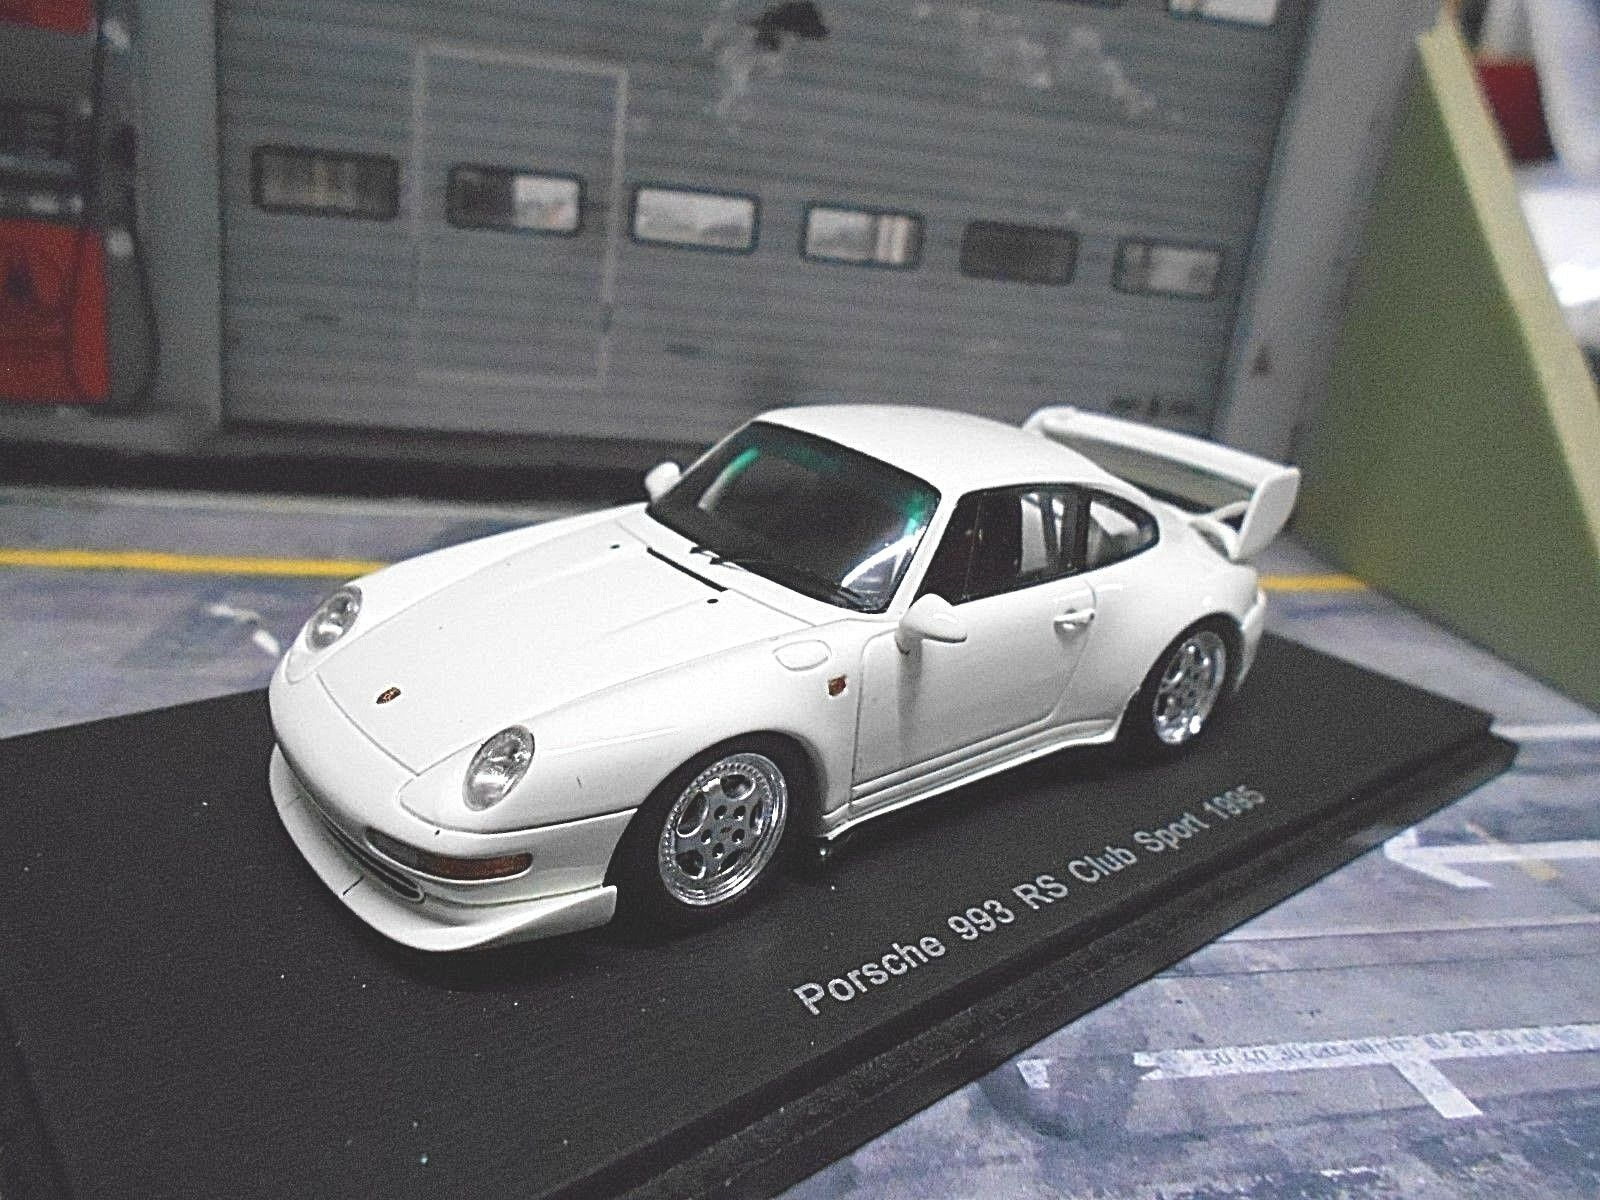 PORSCHE 911 993 Carrera RS Club Sport W 1995 Spark Resin highenddetail LIM 1 43